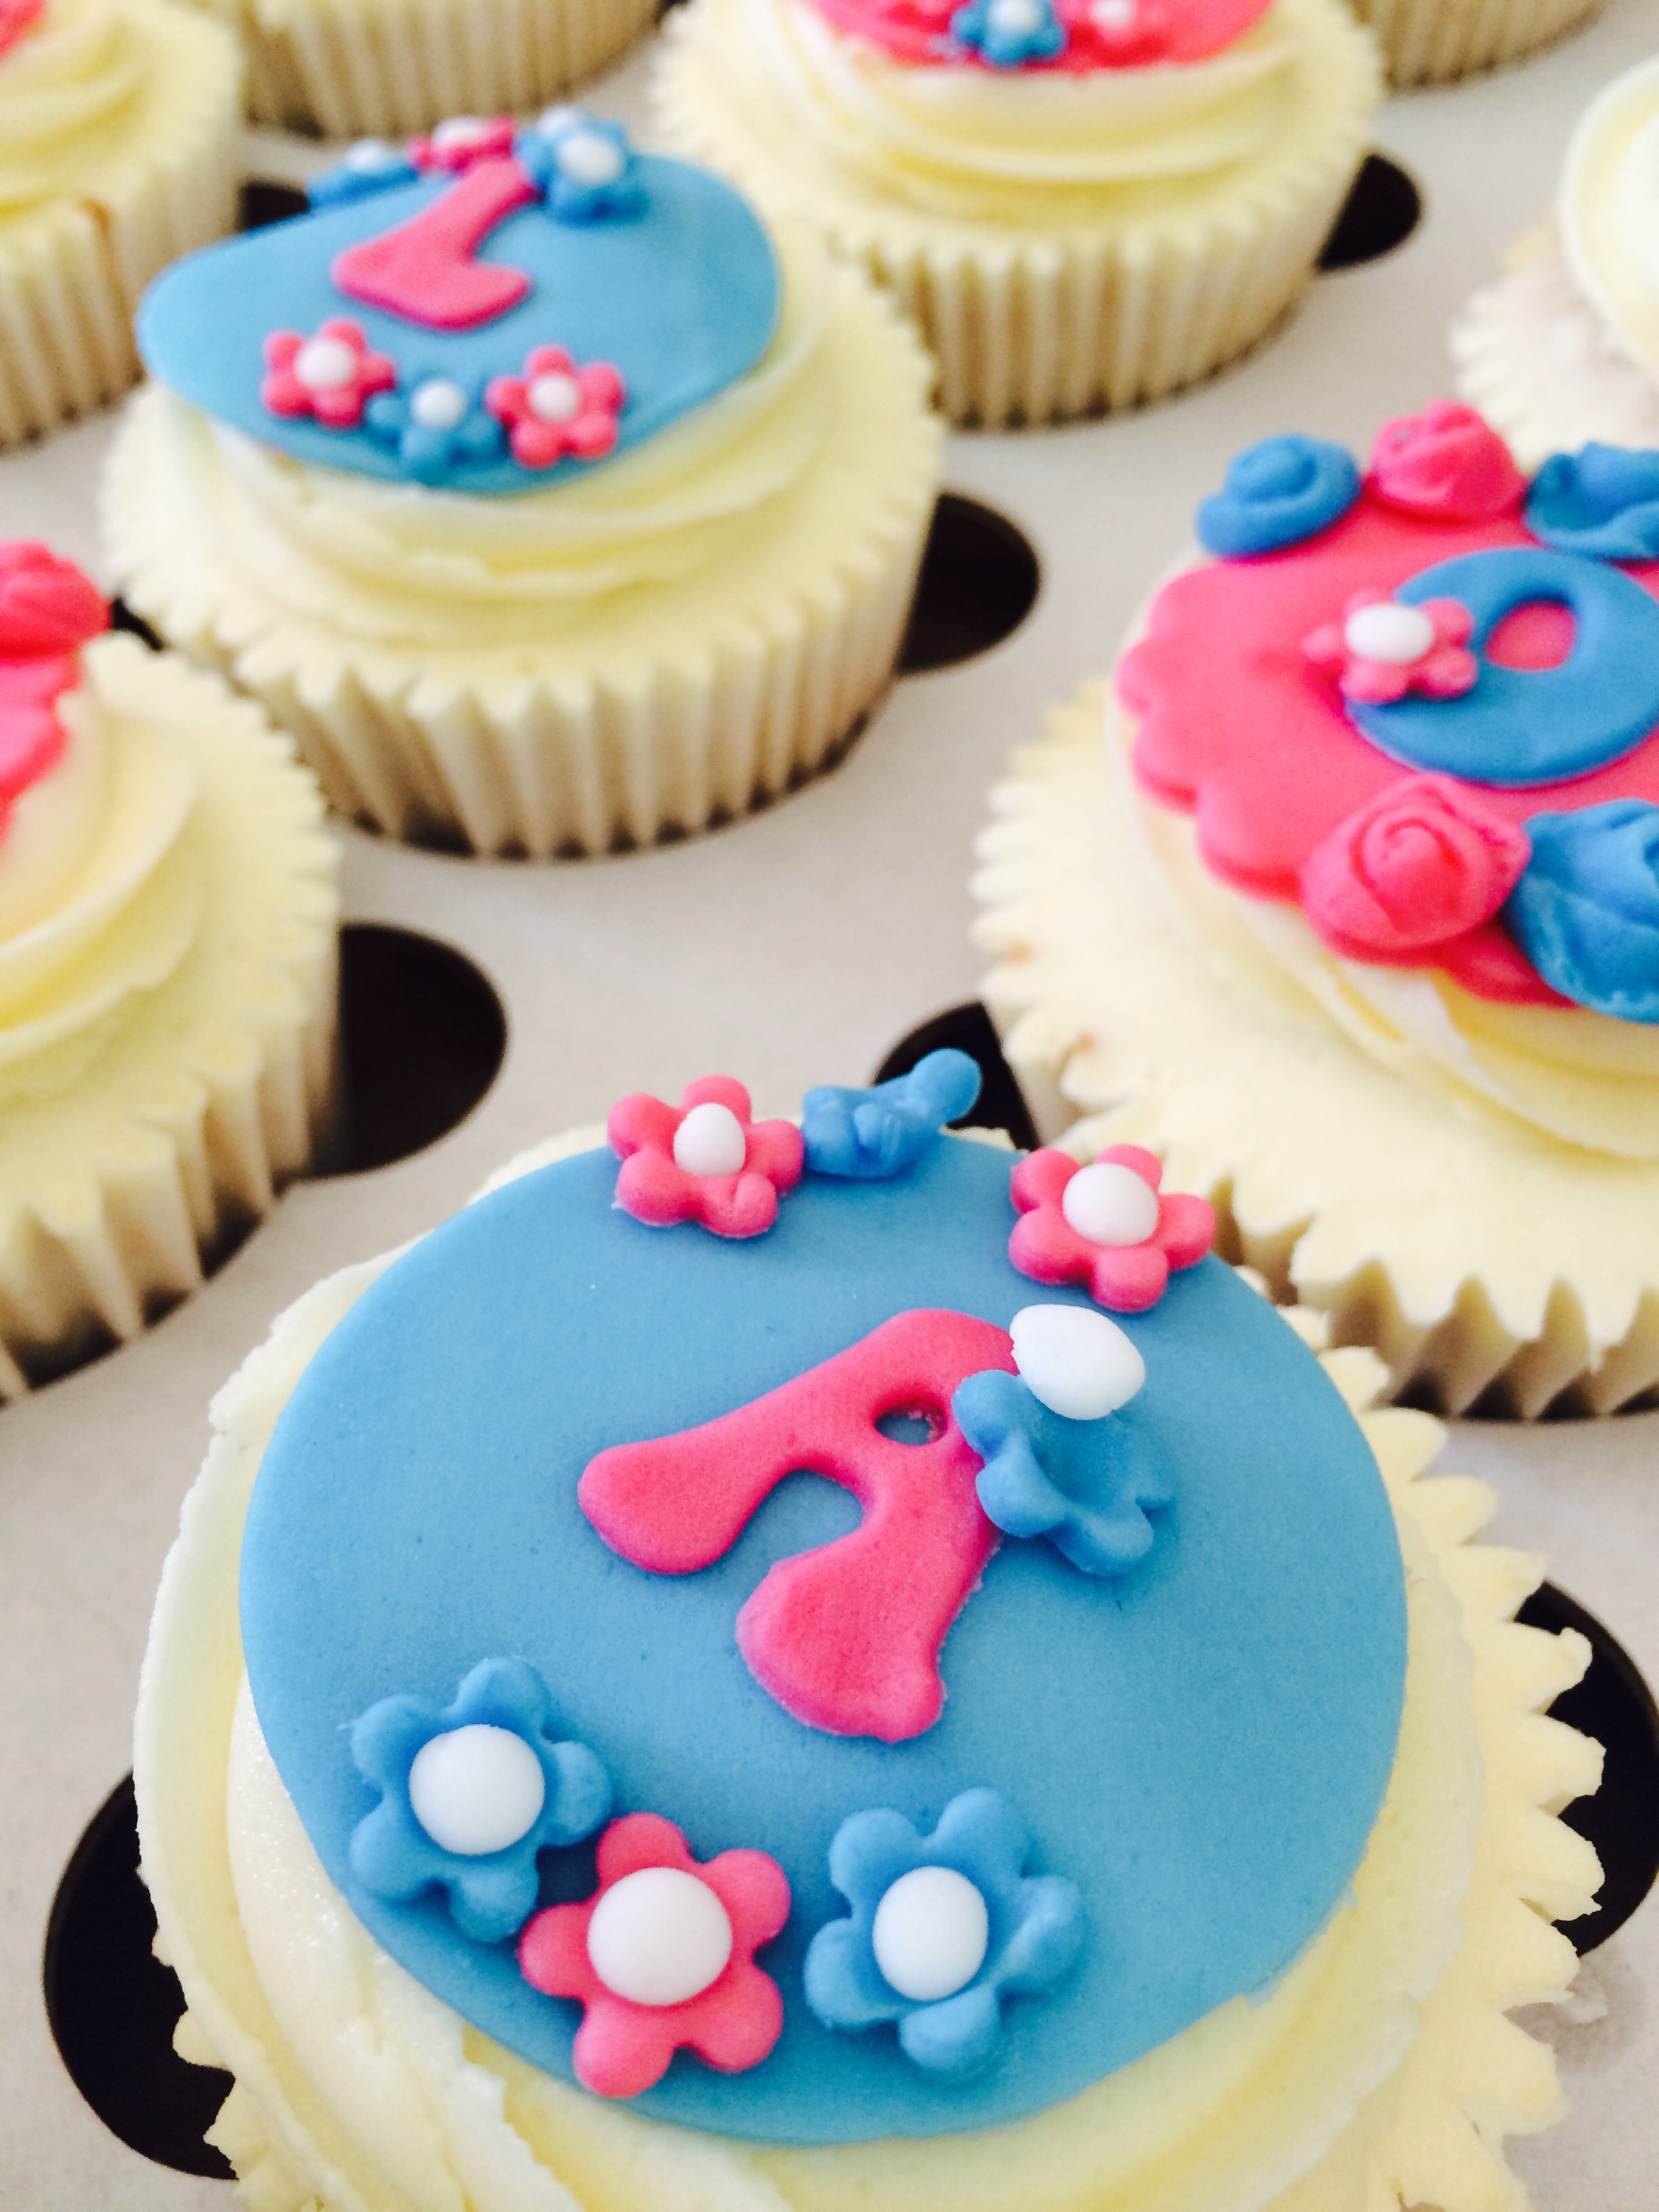 Cake Decorating Classes Edinburgh